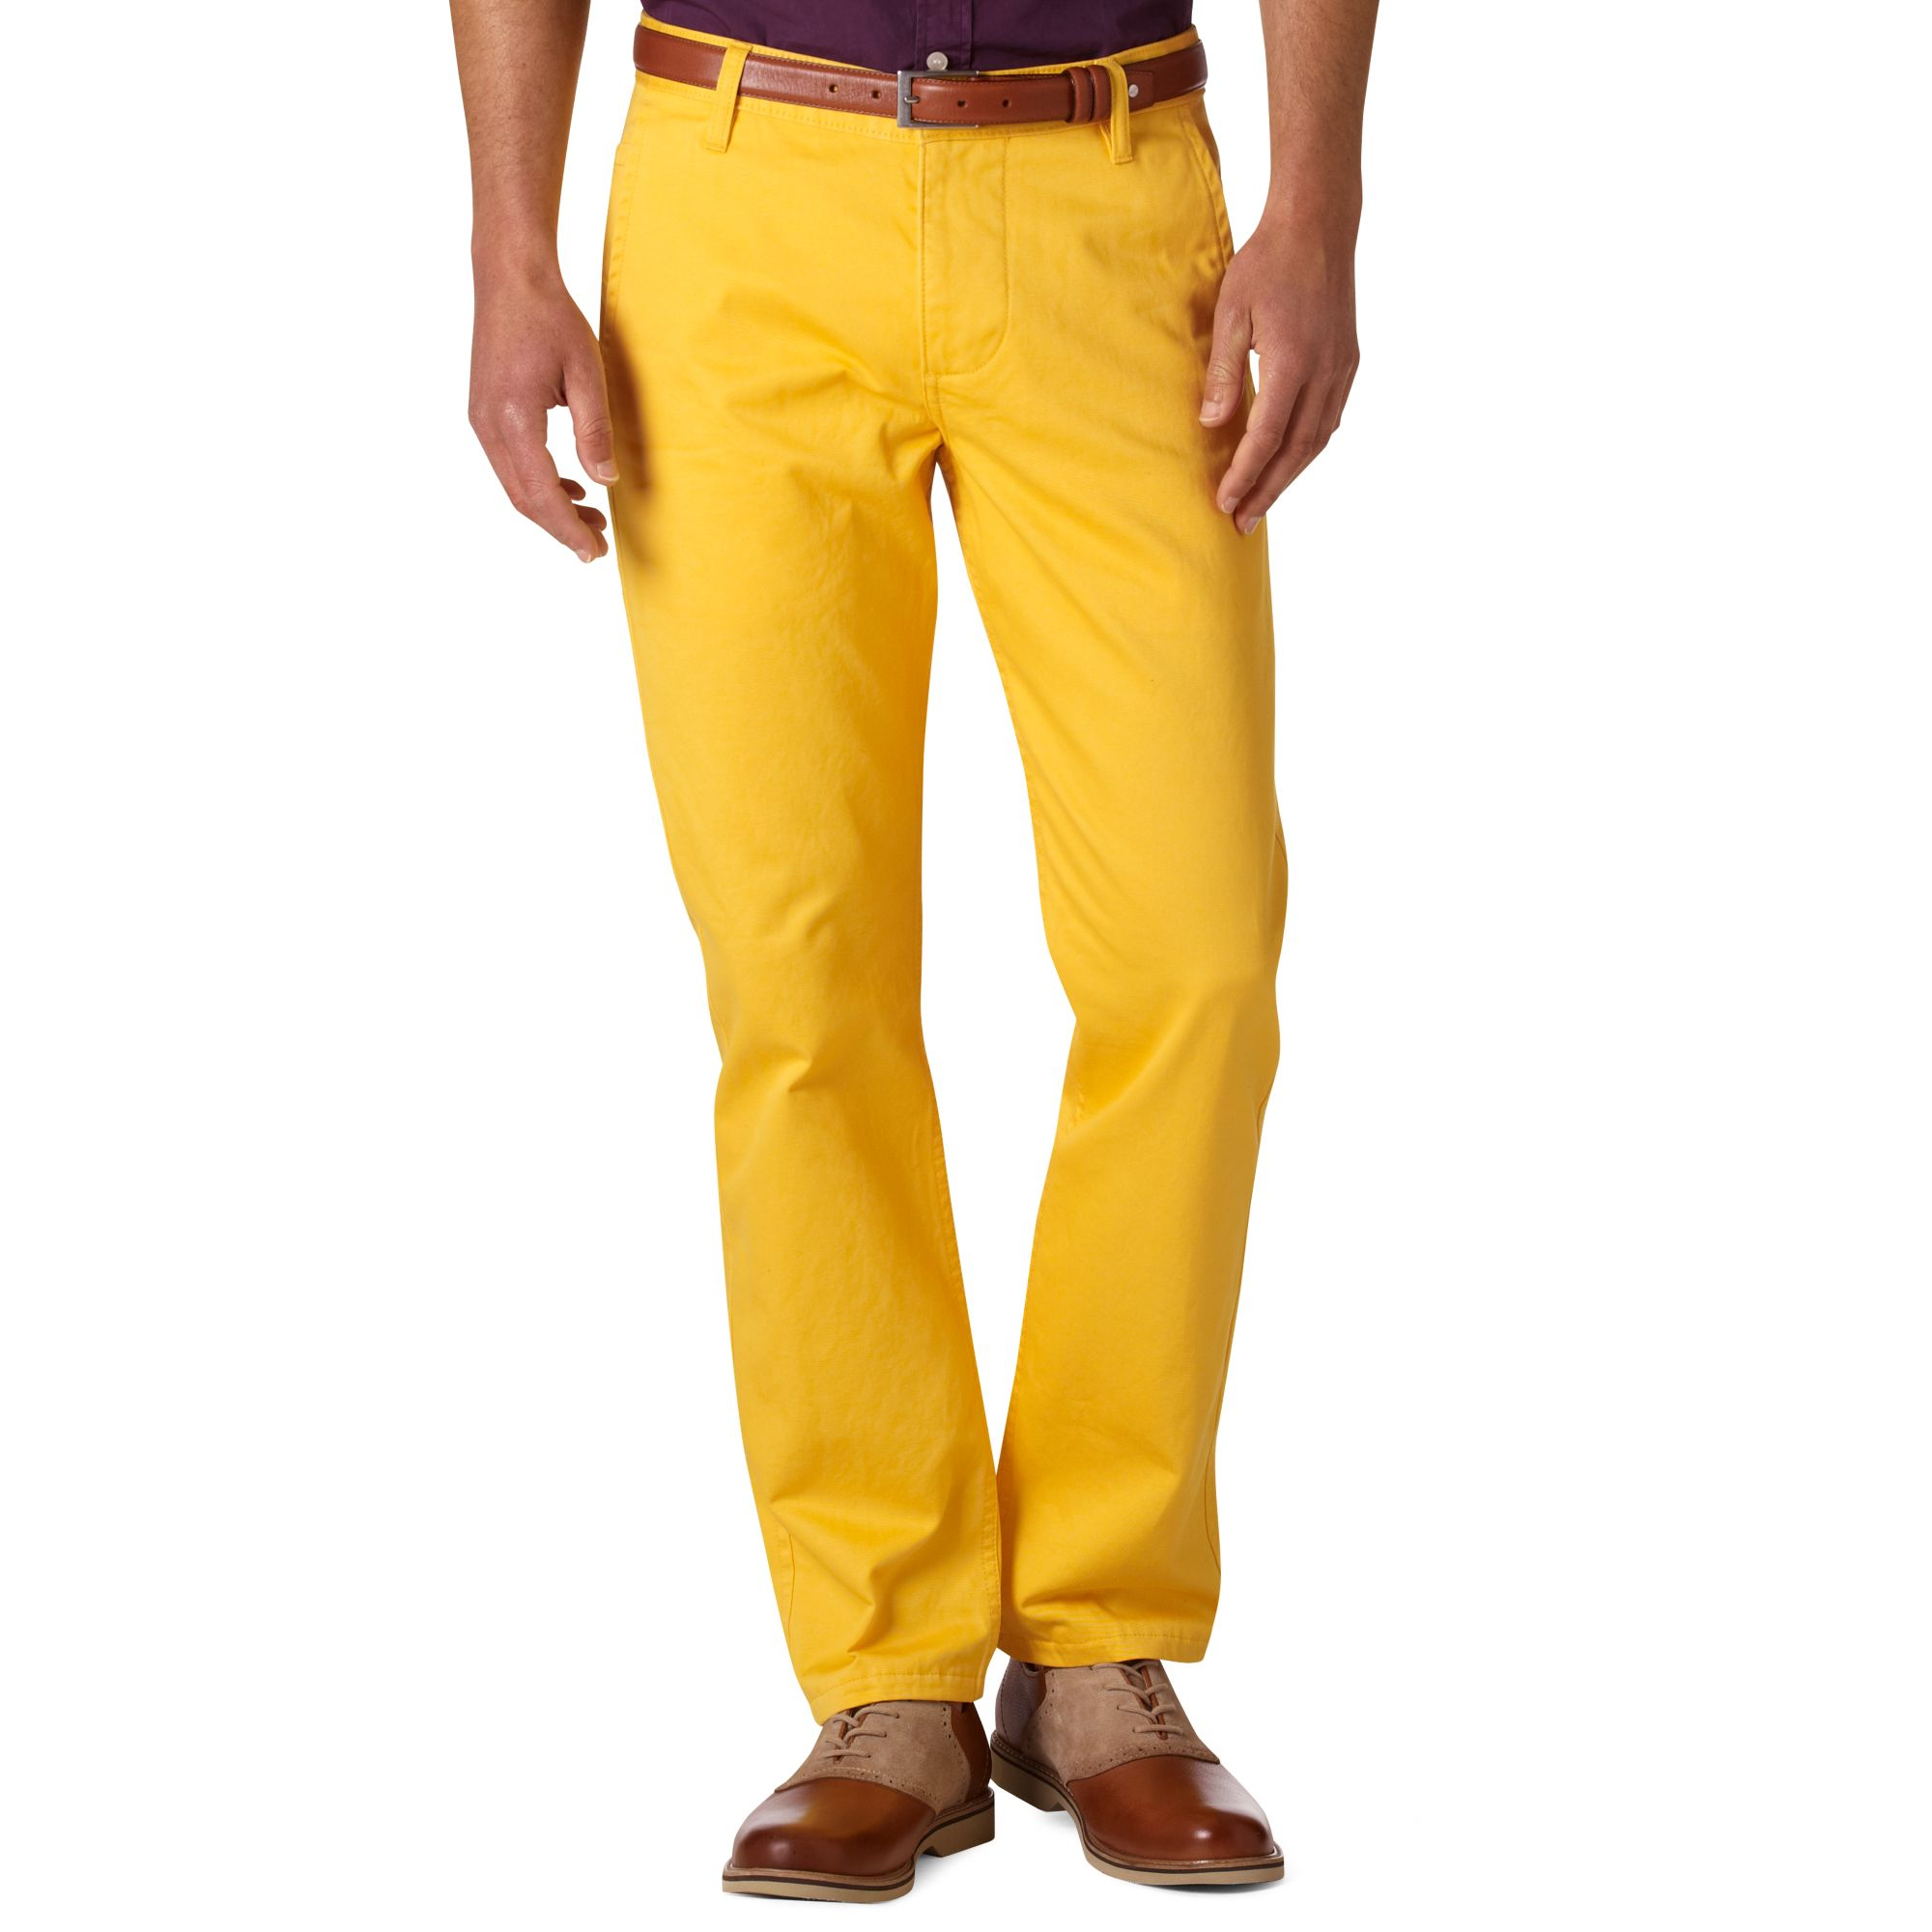 Dockers Slimfit Game Day Alpha Khaki Louisiana State Pants in ...